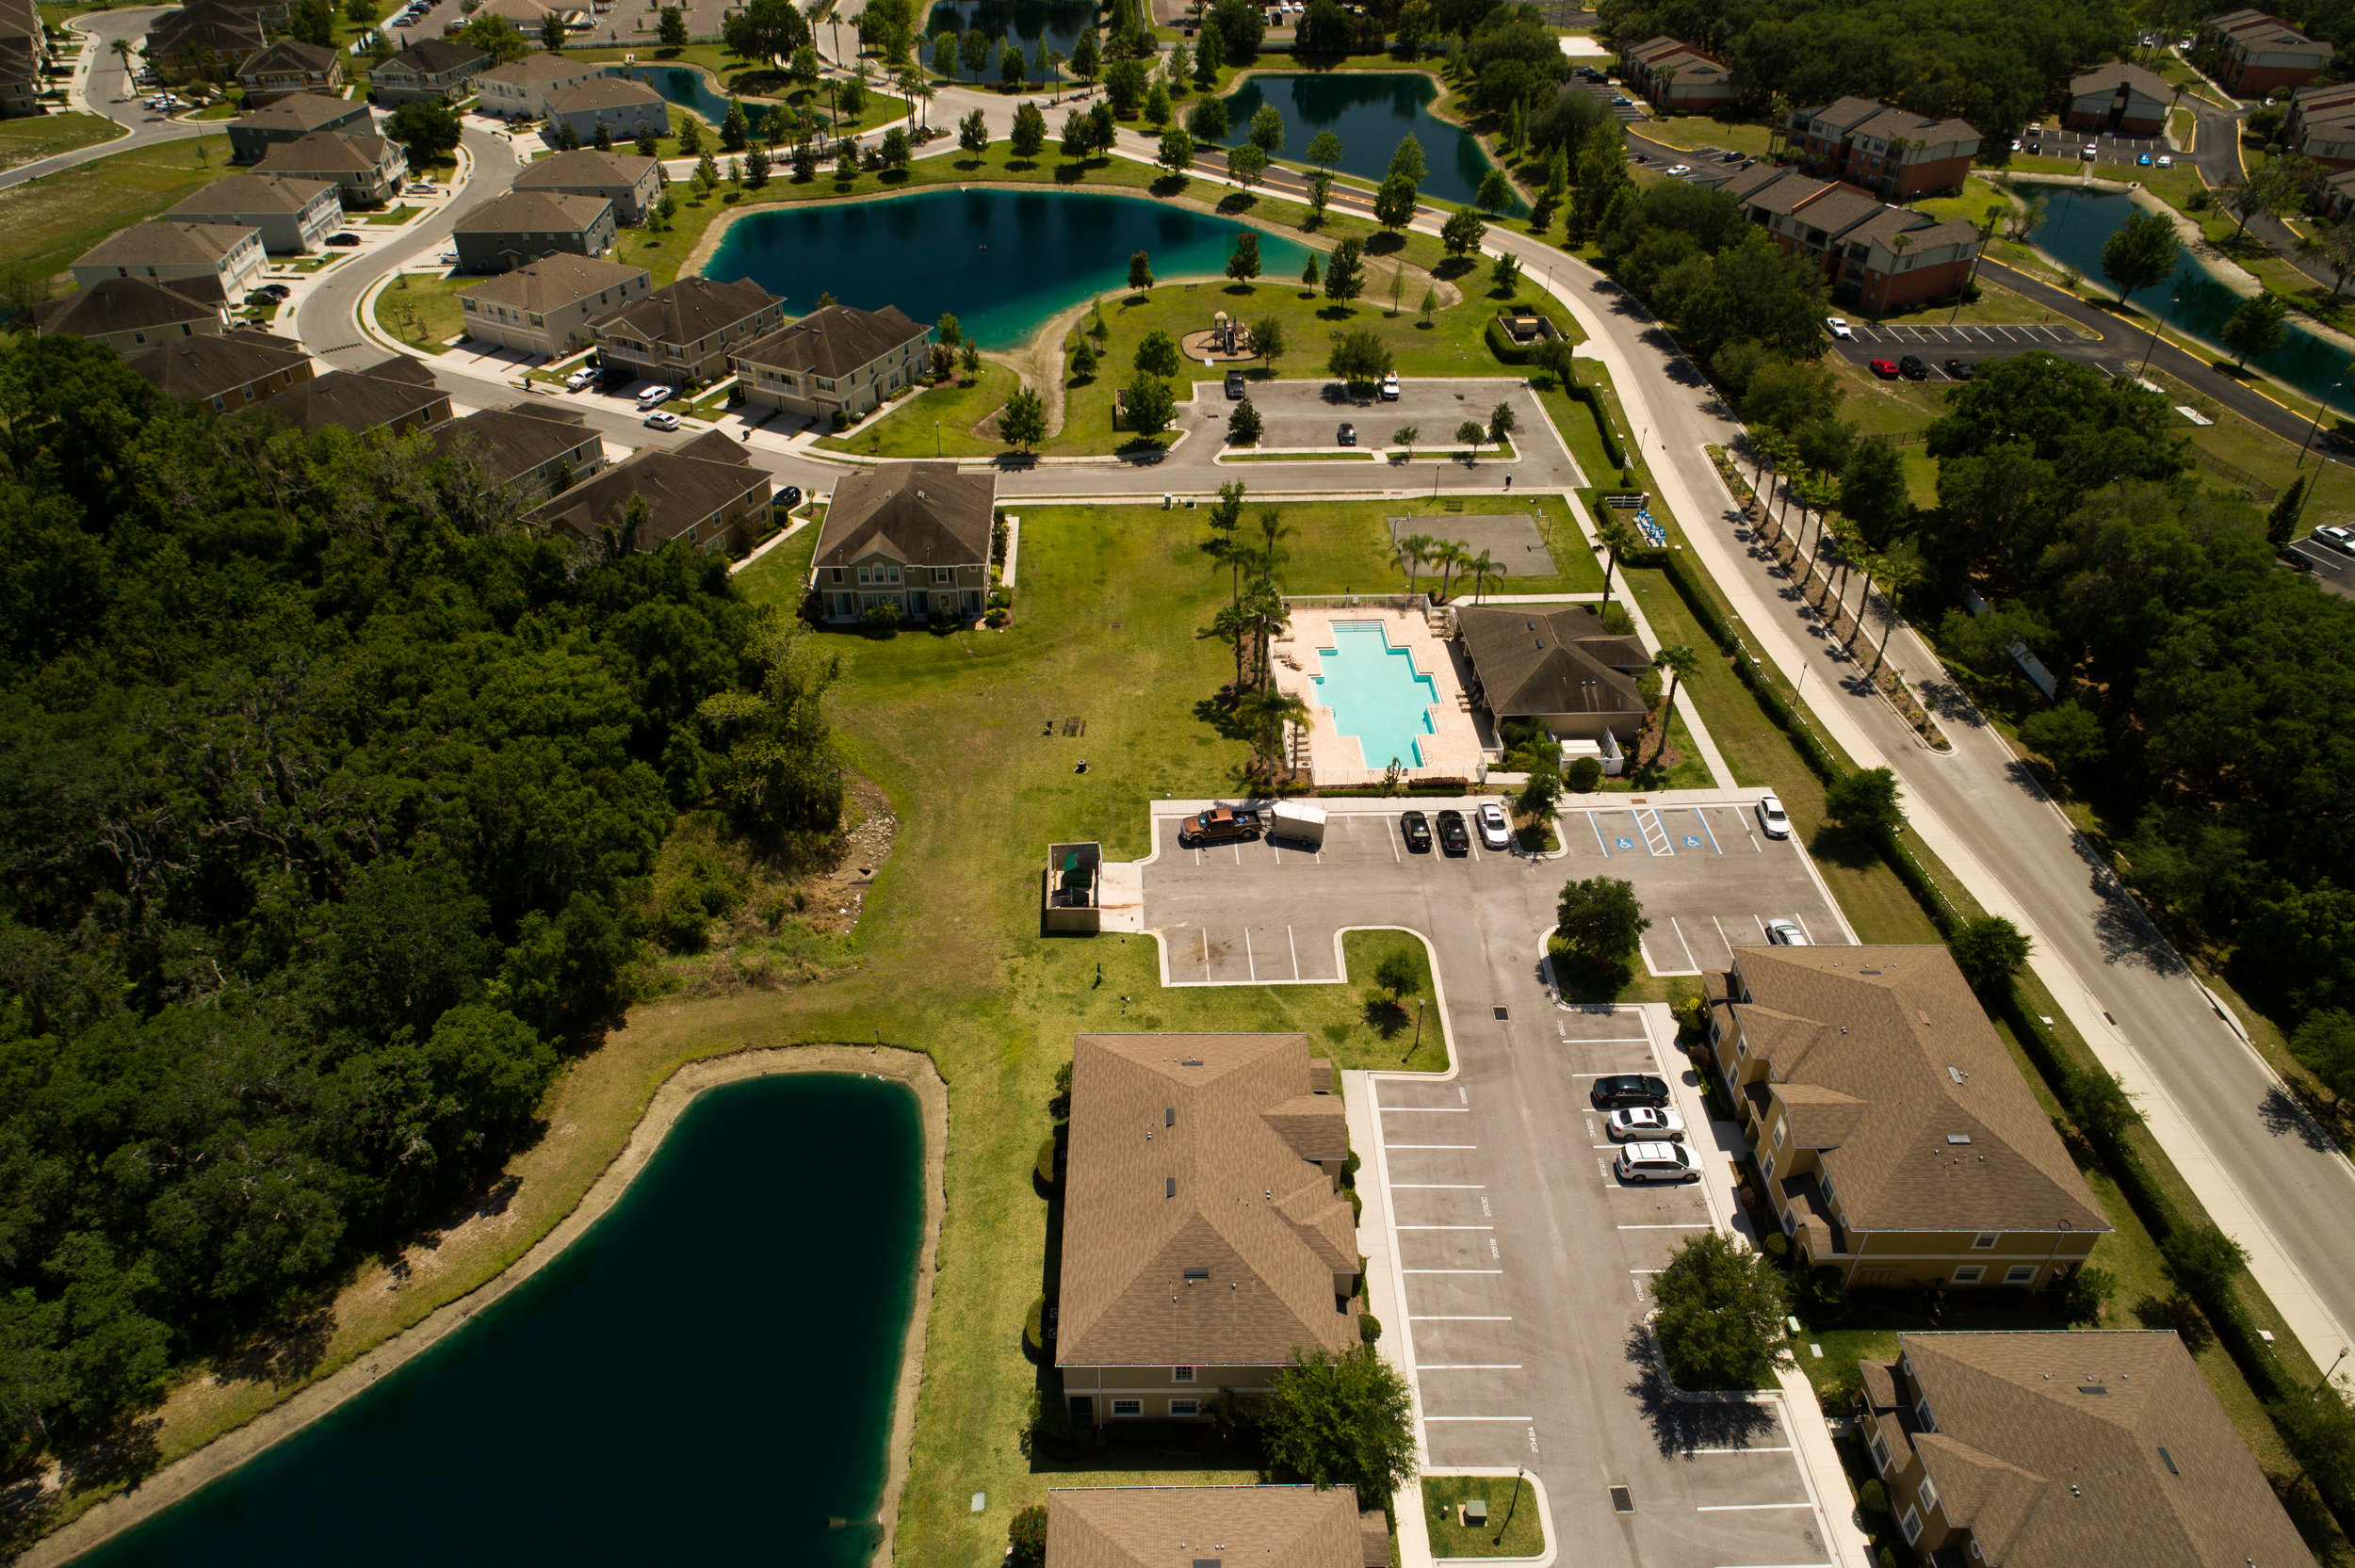 2049 Greenwood Valley aerial-11.jpg